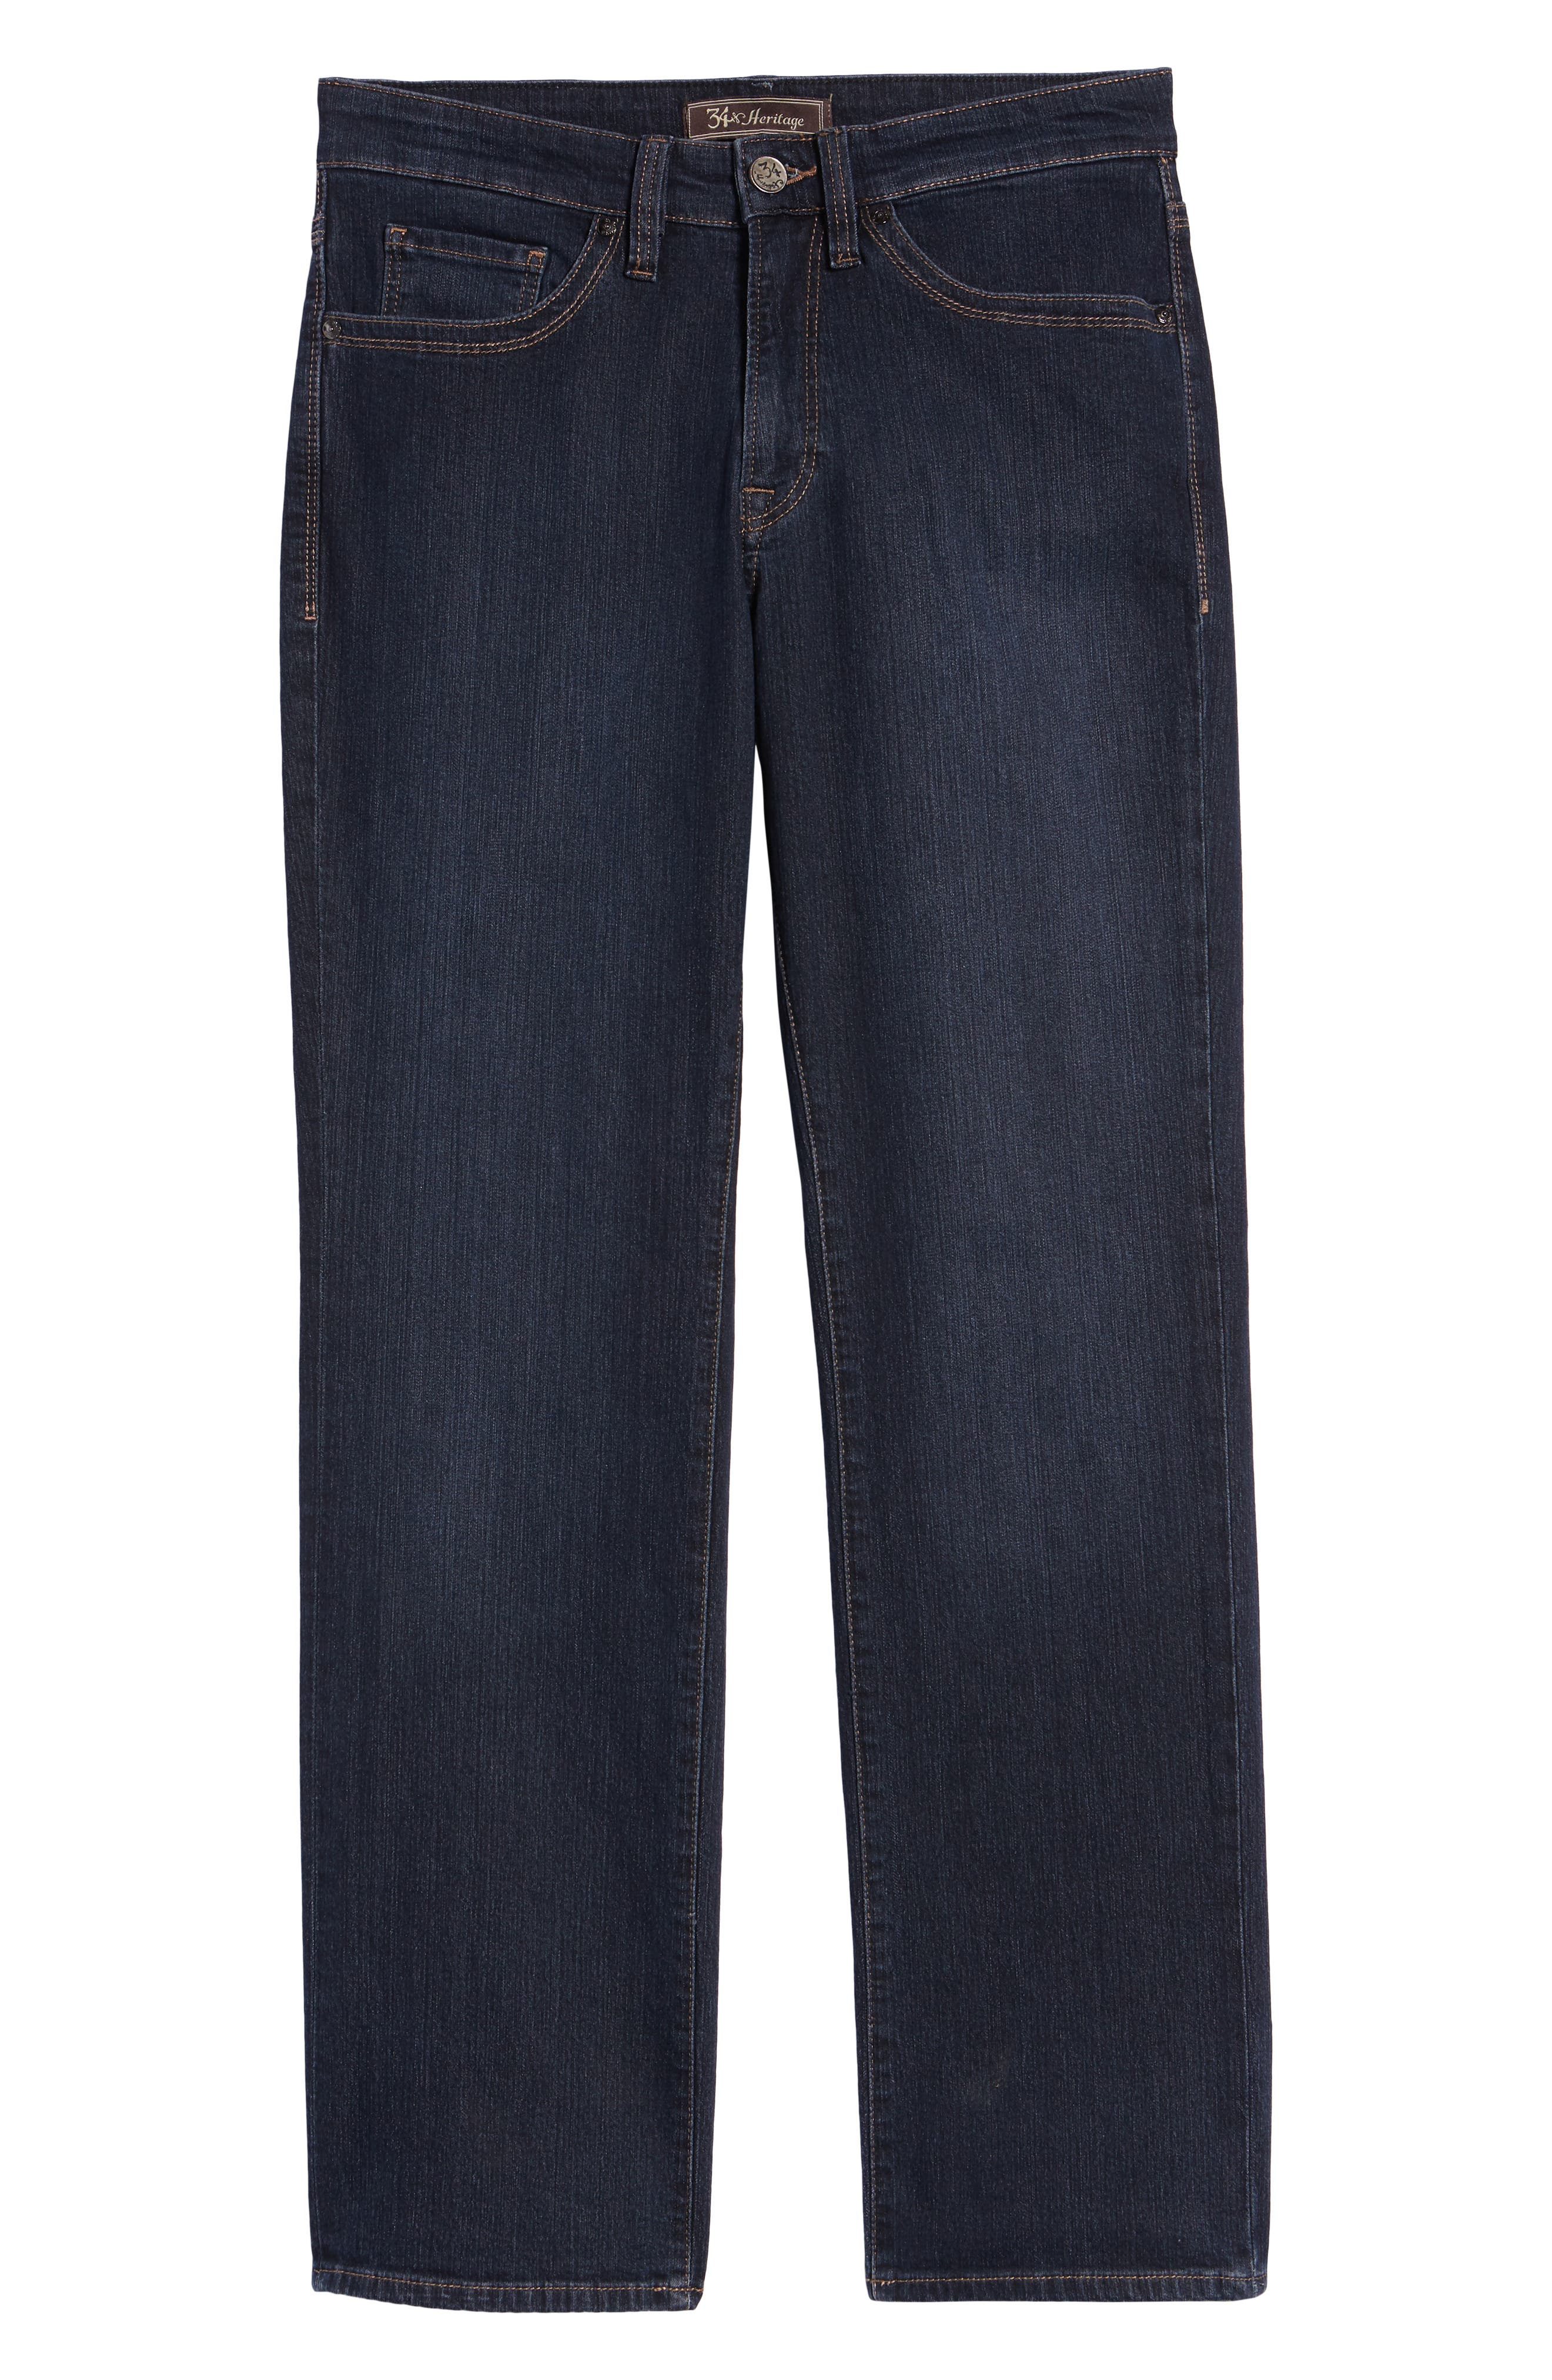 34 HERITAGE,                             Charisma Relaxed Fit Jeans,                             Alternate thumbnail 2, color,                             DARK COMFORT